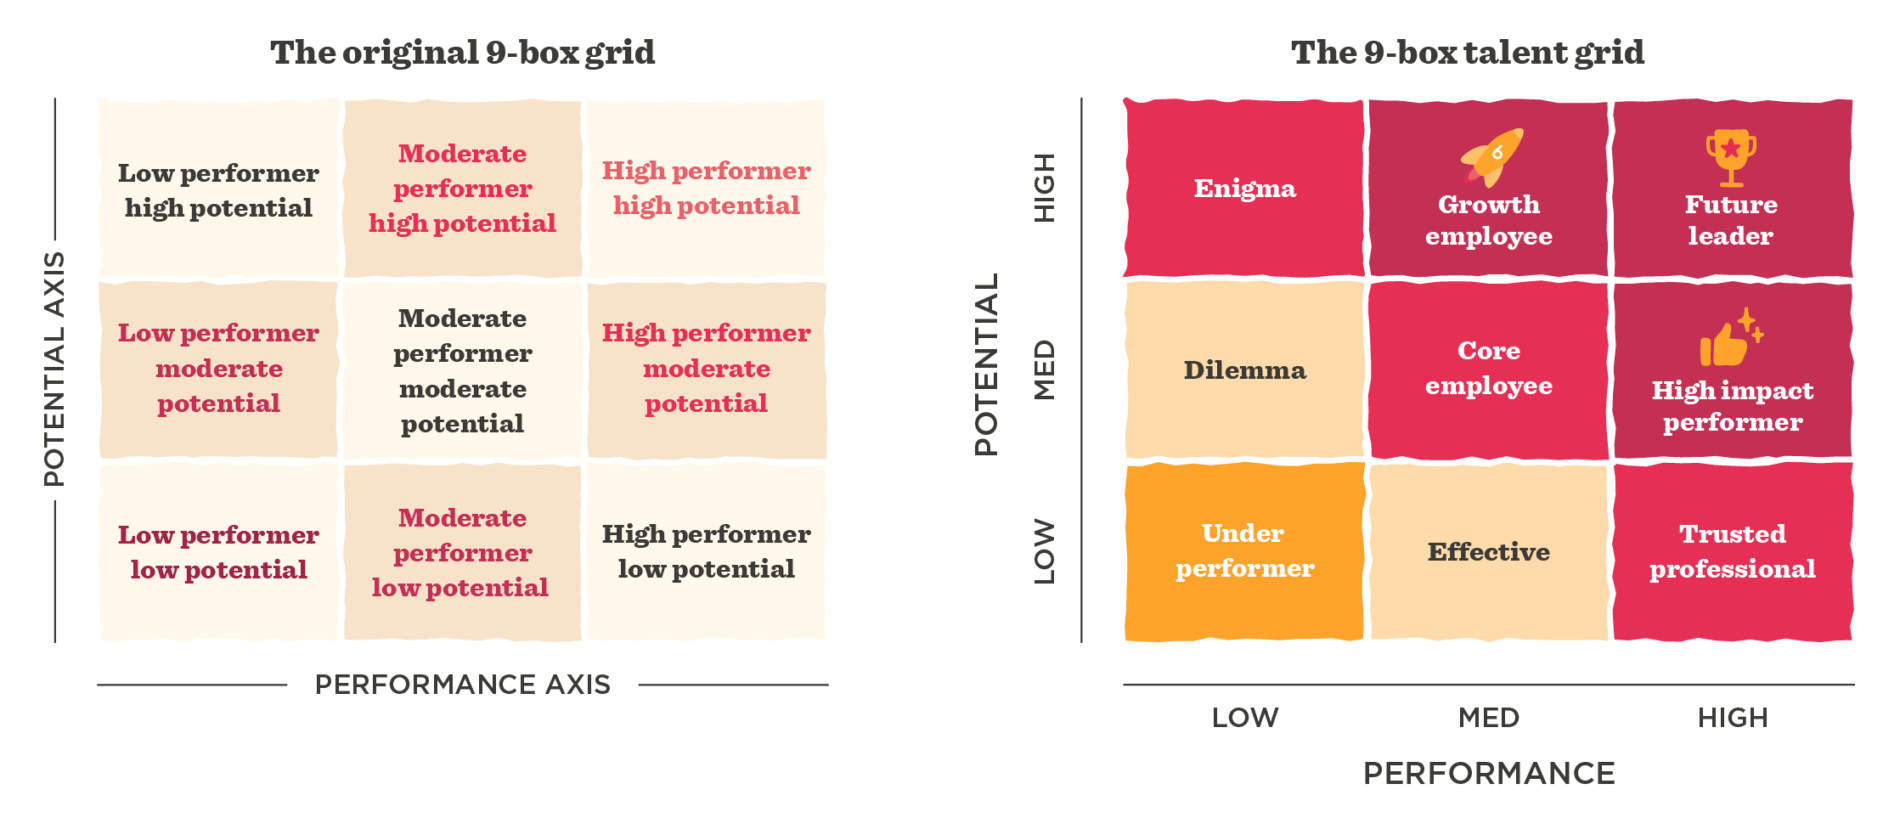 How to use performance mapping as part of your performance management program - 9-box-grid-1-1900x829.png